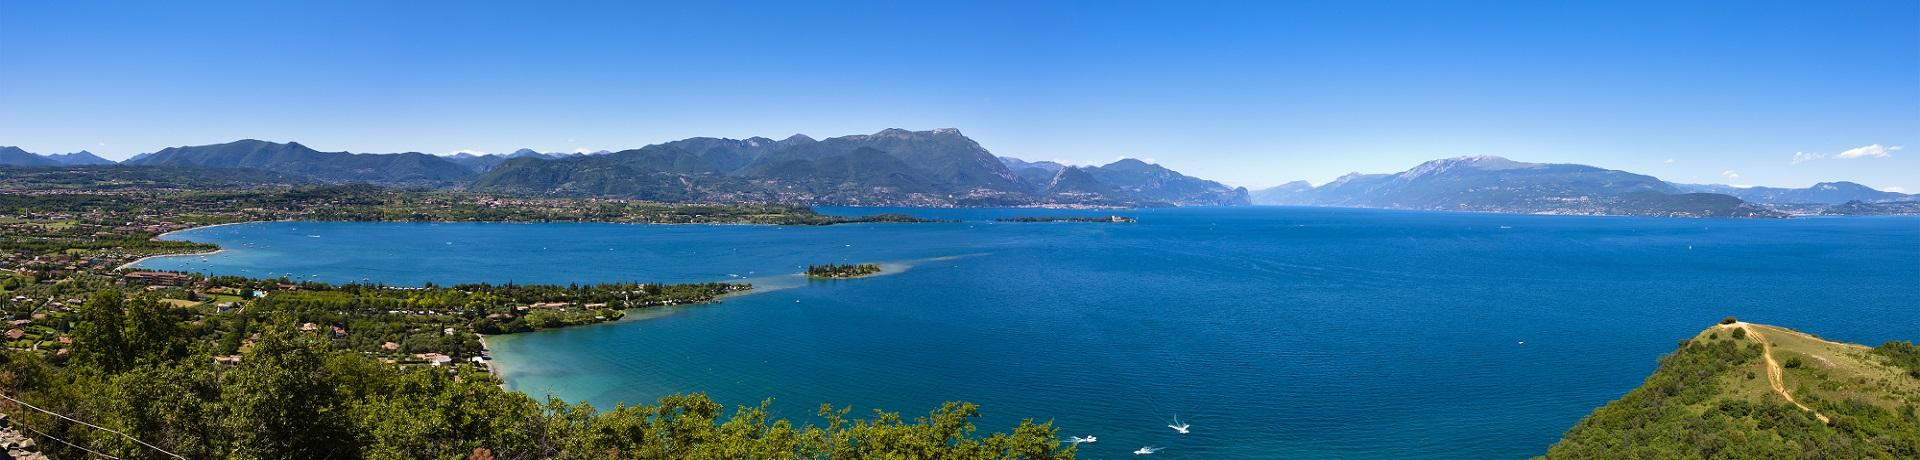 Italien: Gardasee - Emotion